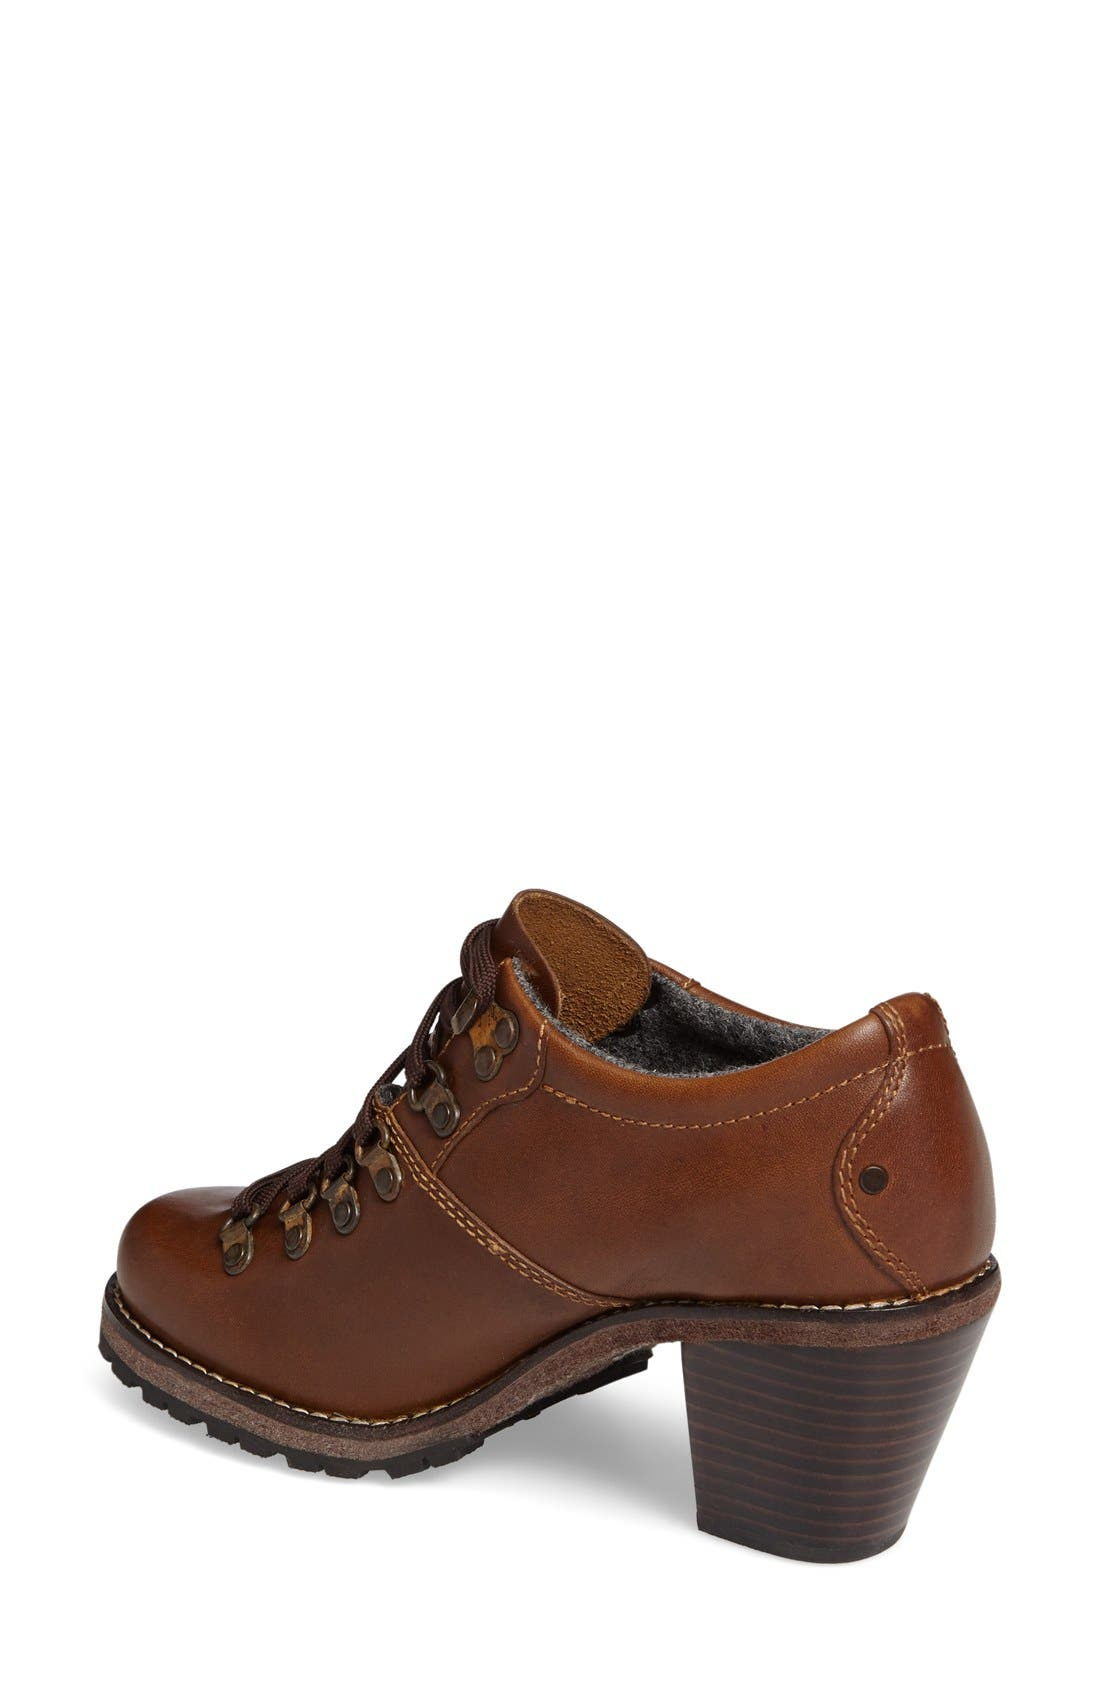 Alternate Image 2  - Woolrich Cascade Range Oxford Pump (Women)